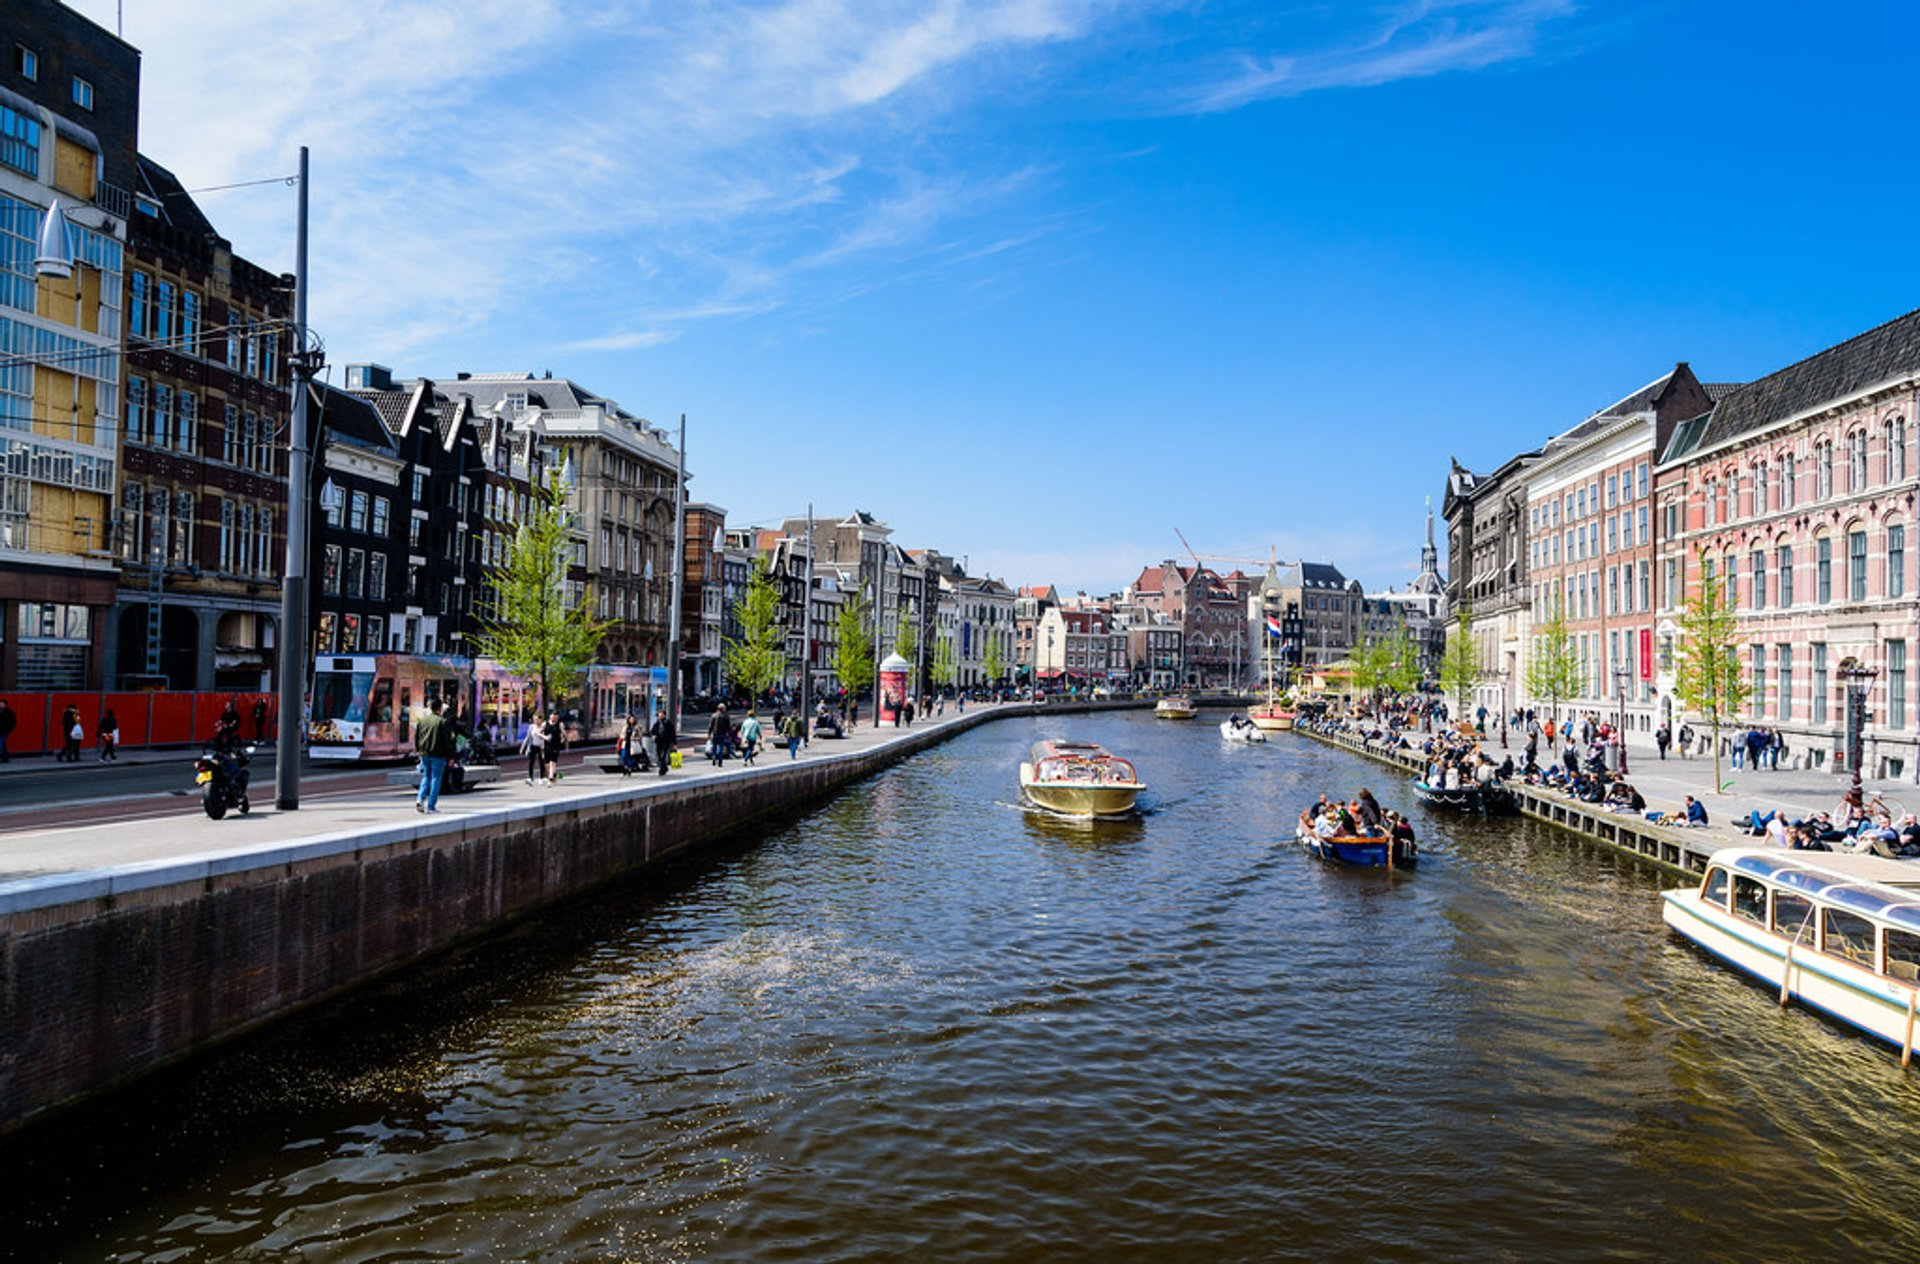 Canal Cruising in Amsterdam 2020 - Best Time